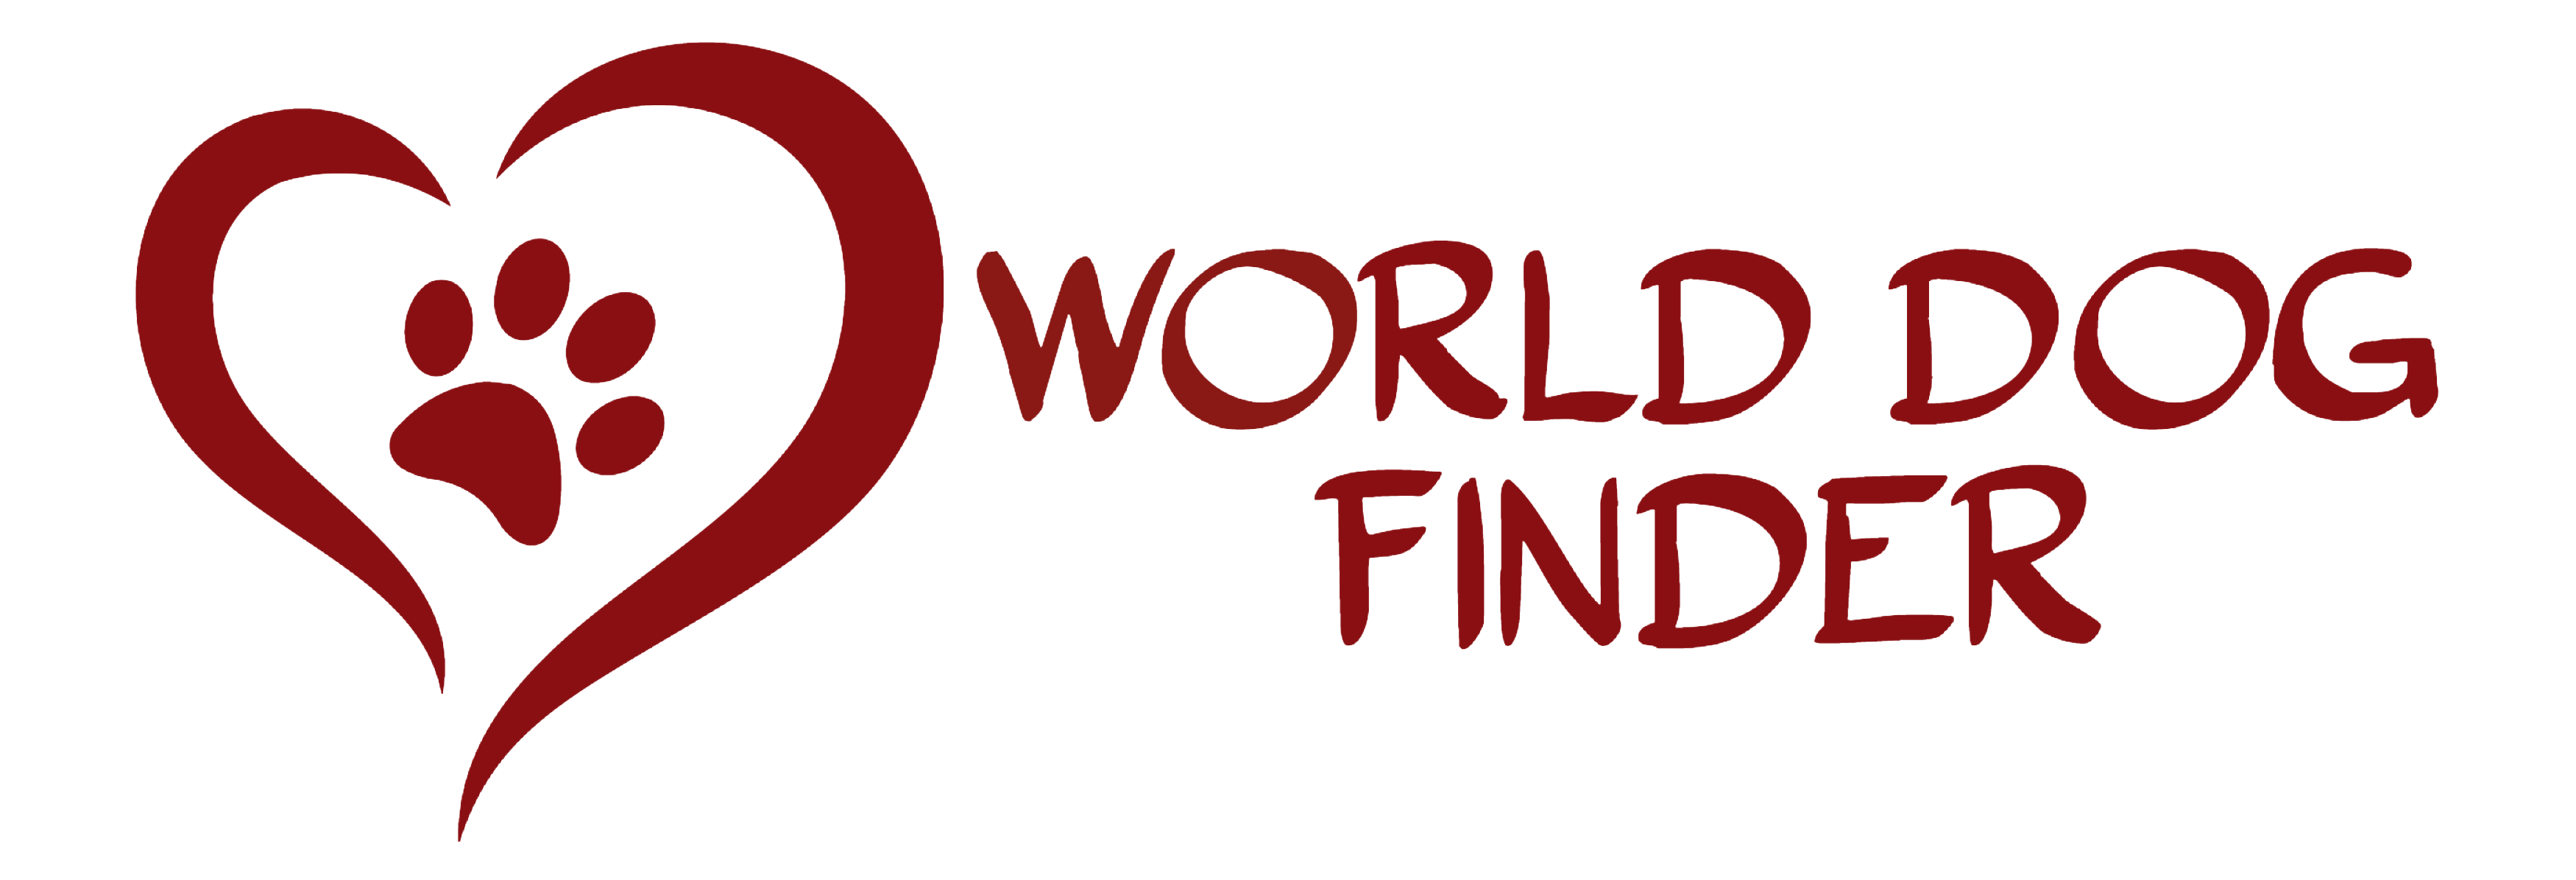 World Dog Finder - Welcome To The Dog's World